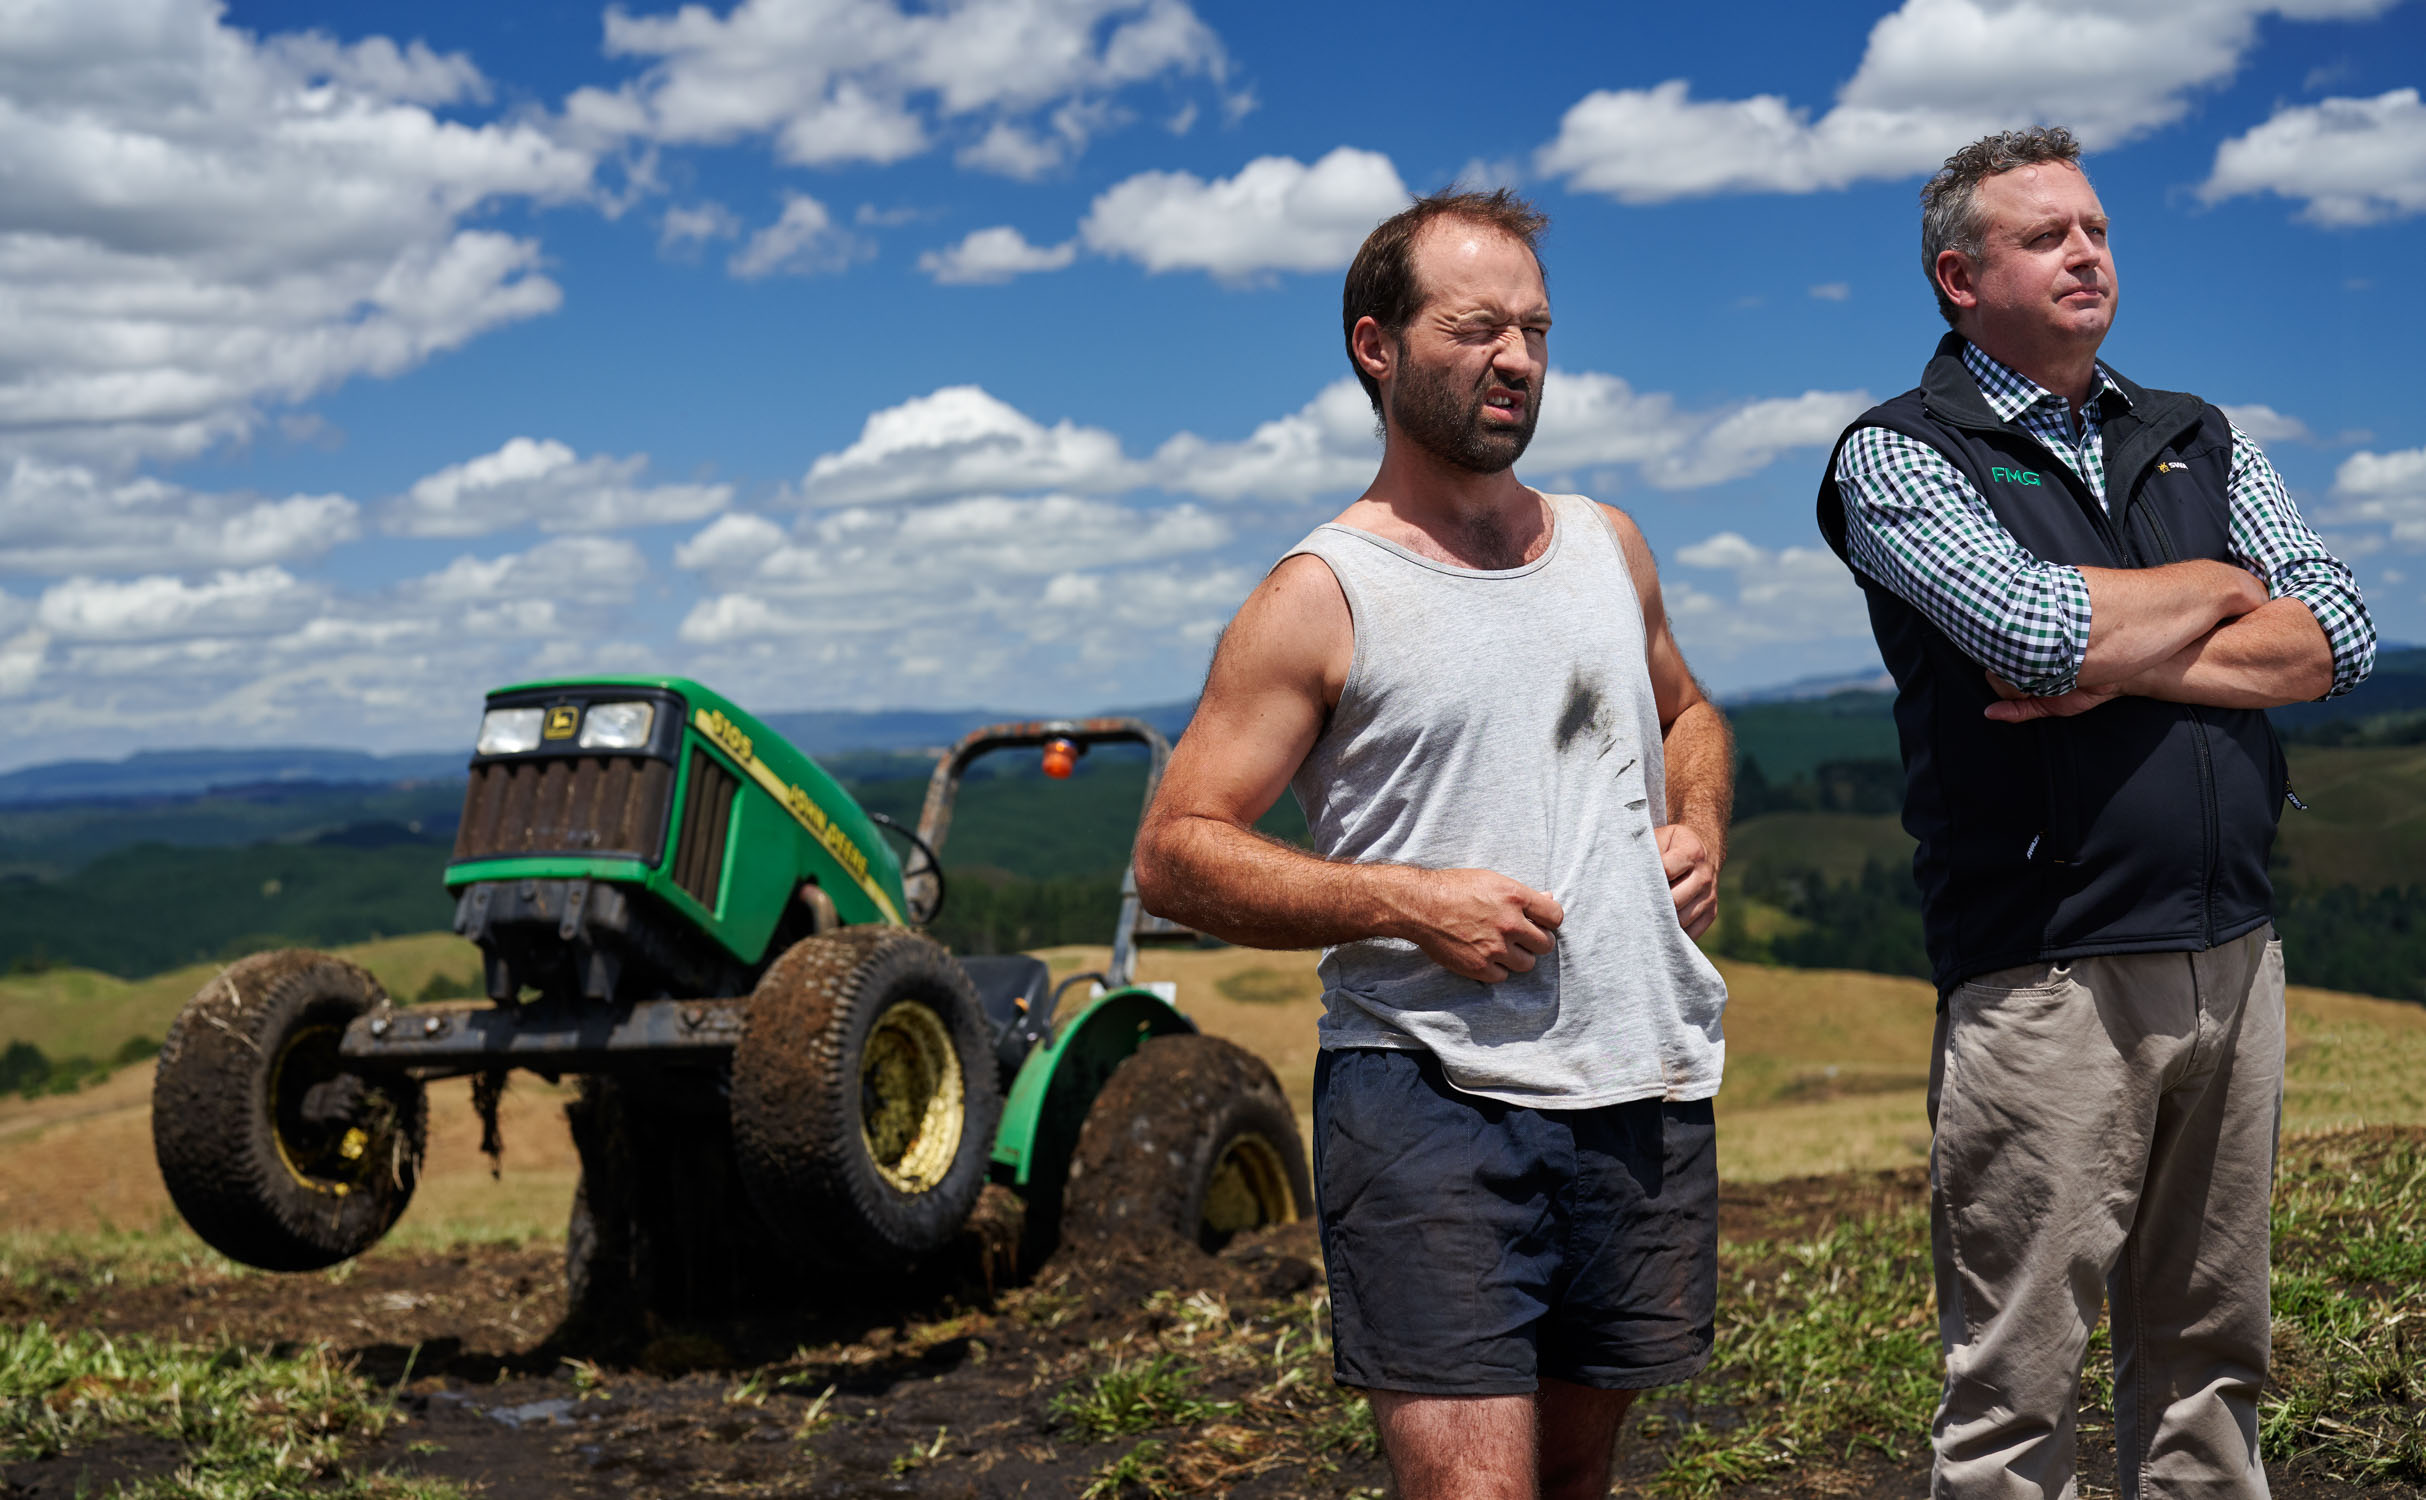 FMG_farmer with tractor stuck in mud with insurance adviser_Spid Pye_983__DSC7677_V2.jpg